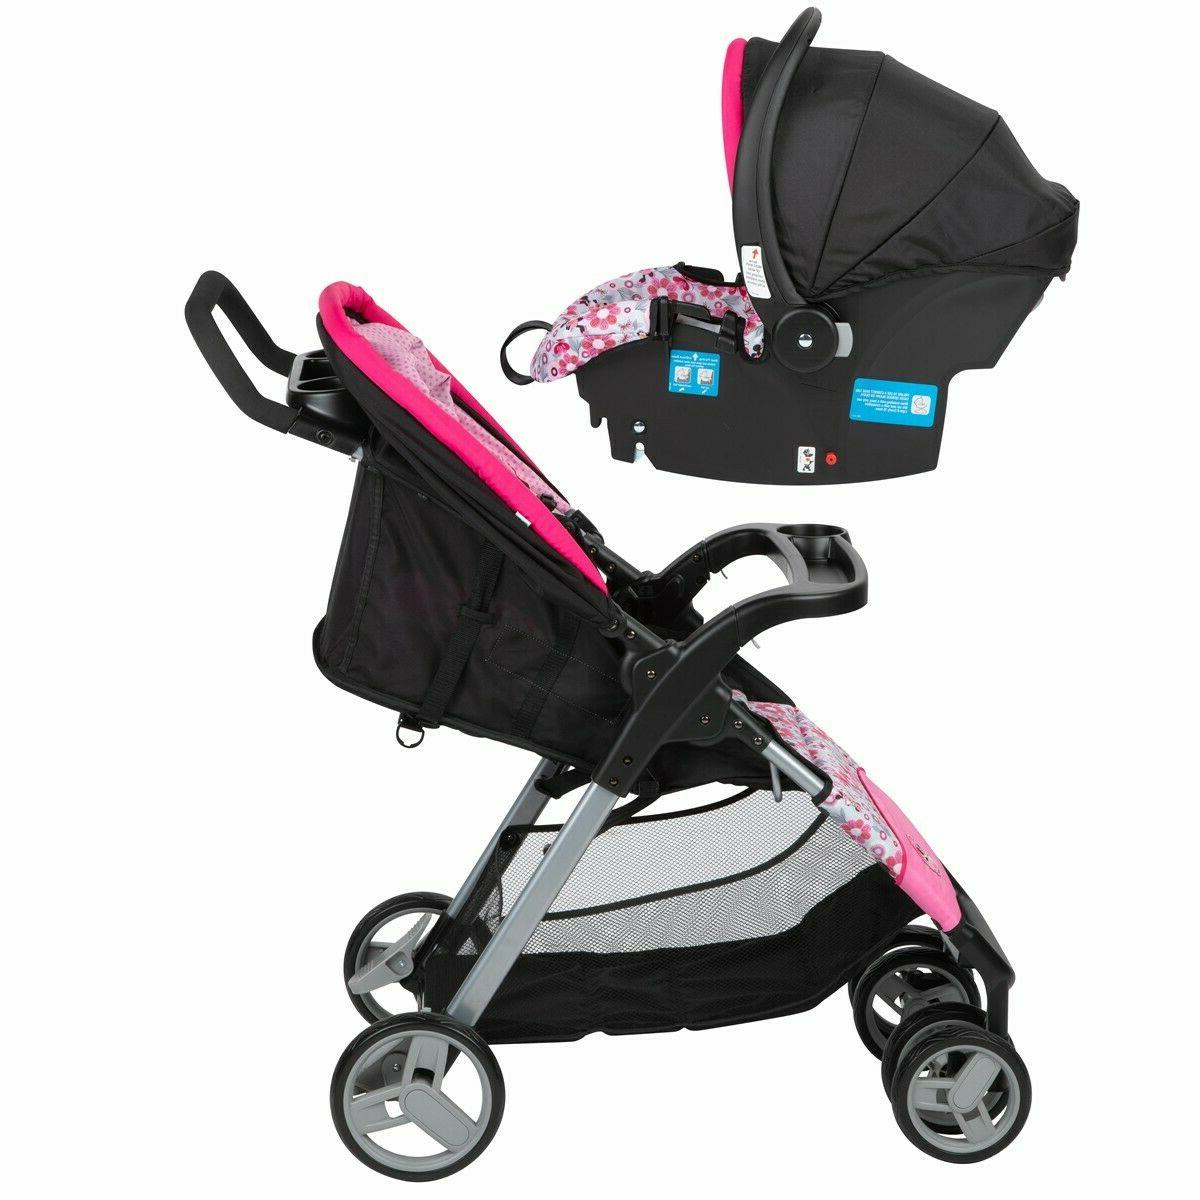 Disney Baby System with Car Seat Infant Playard Bouncer